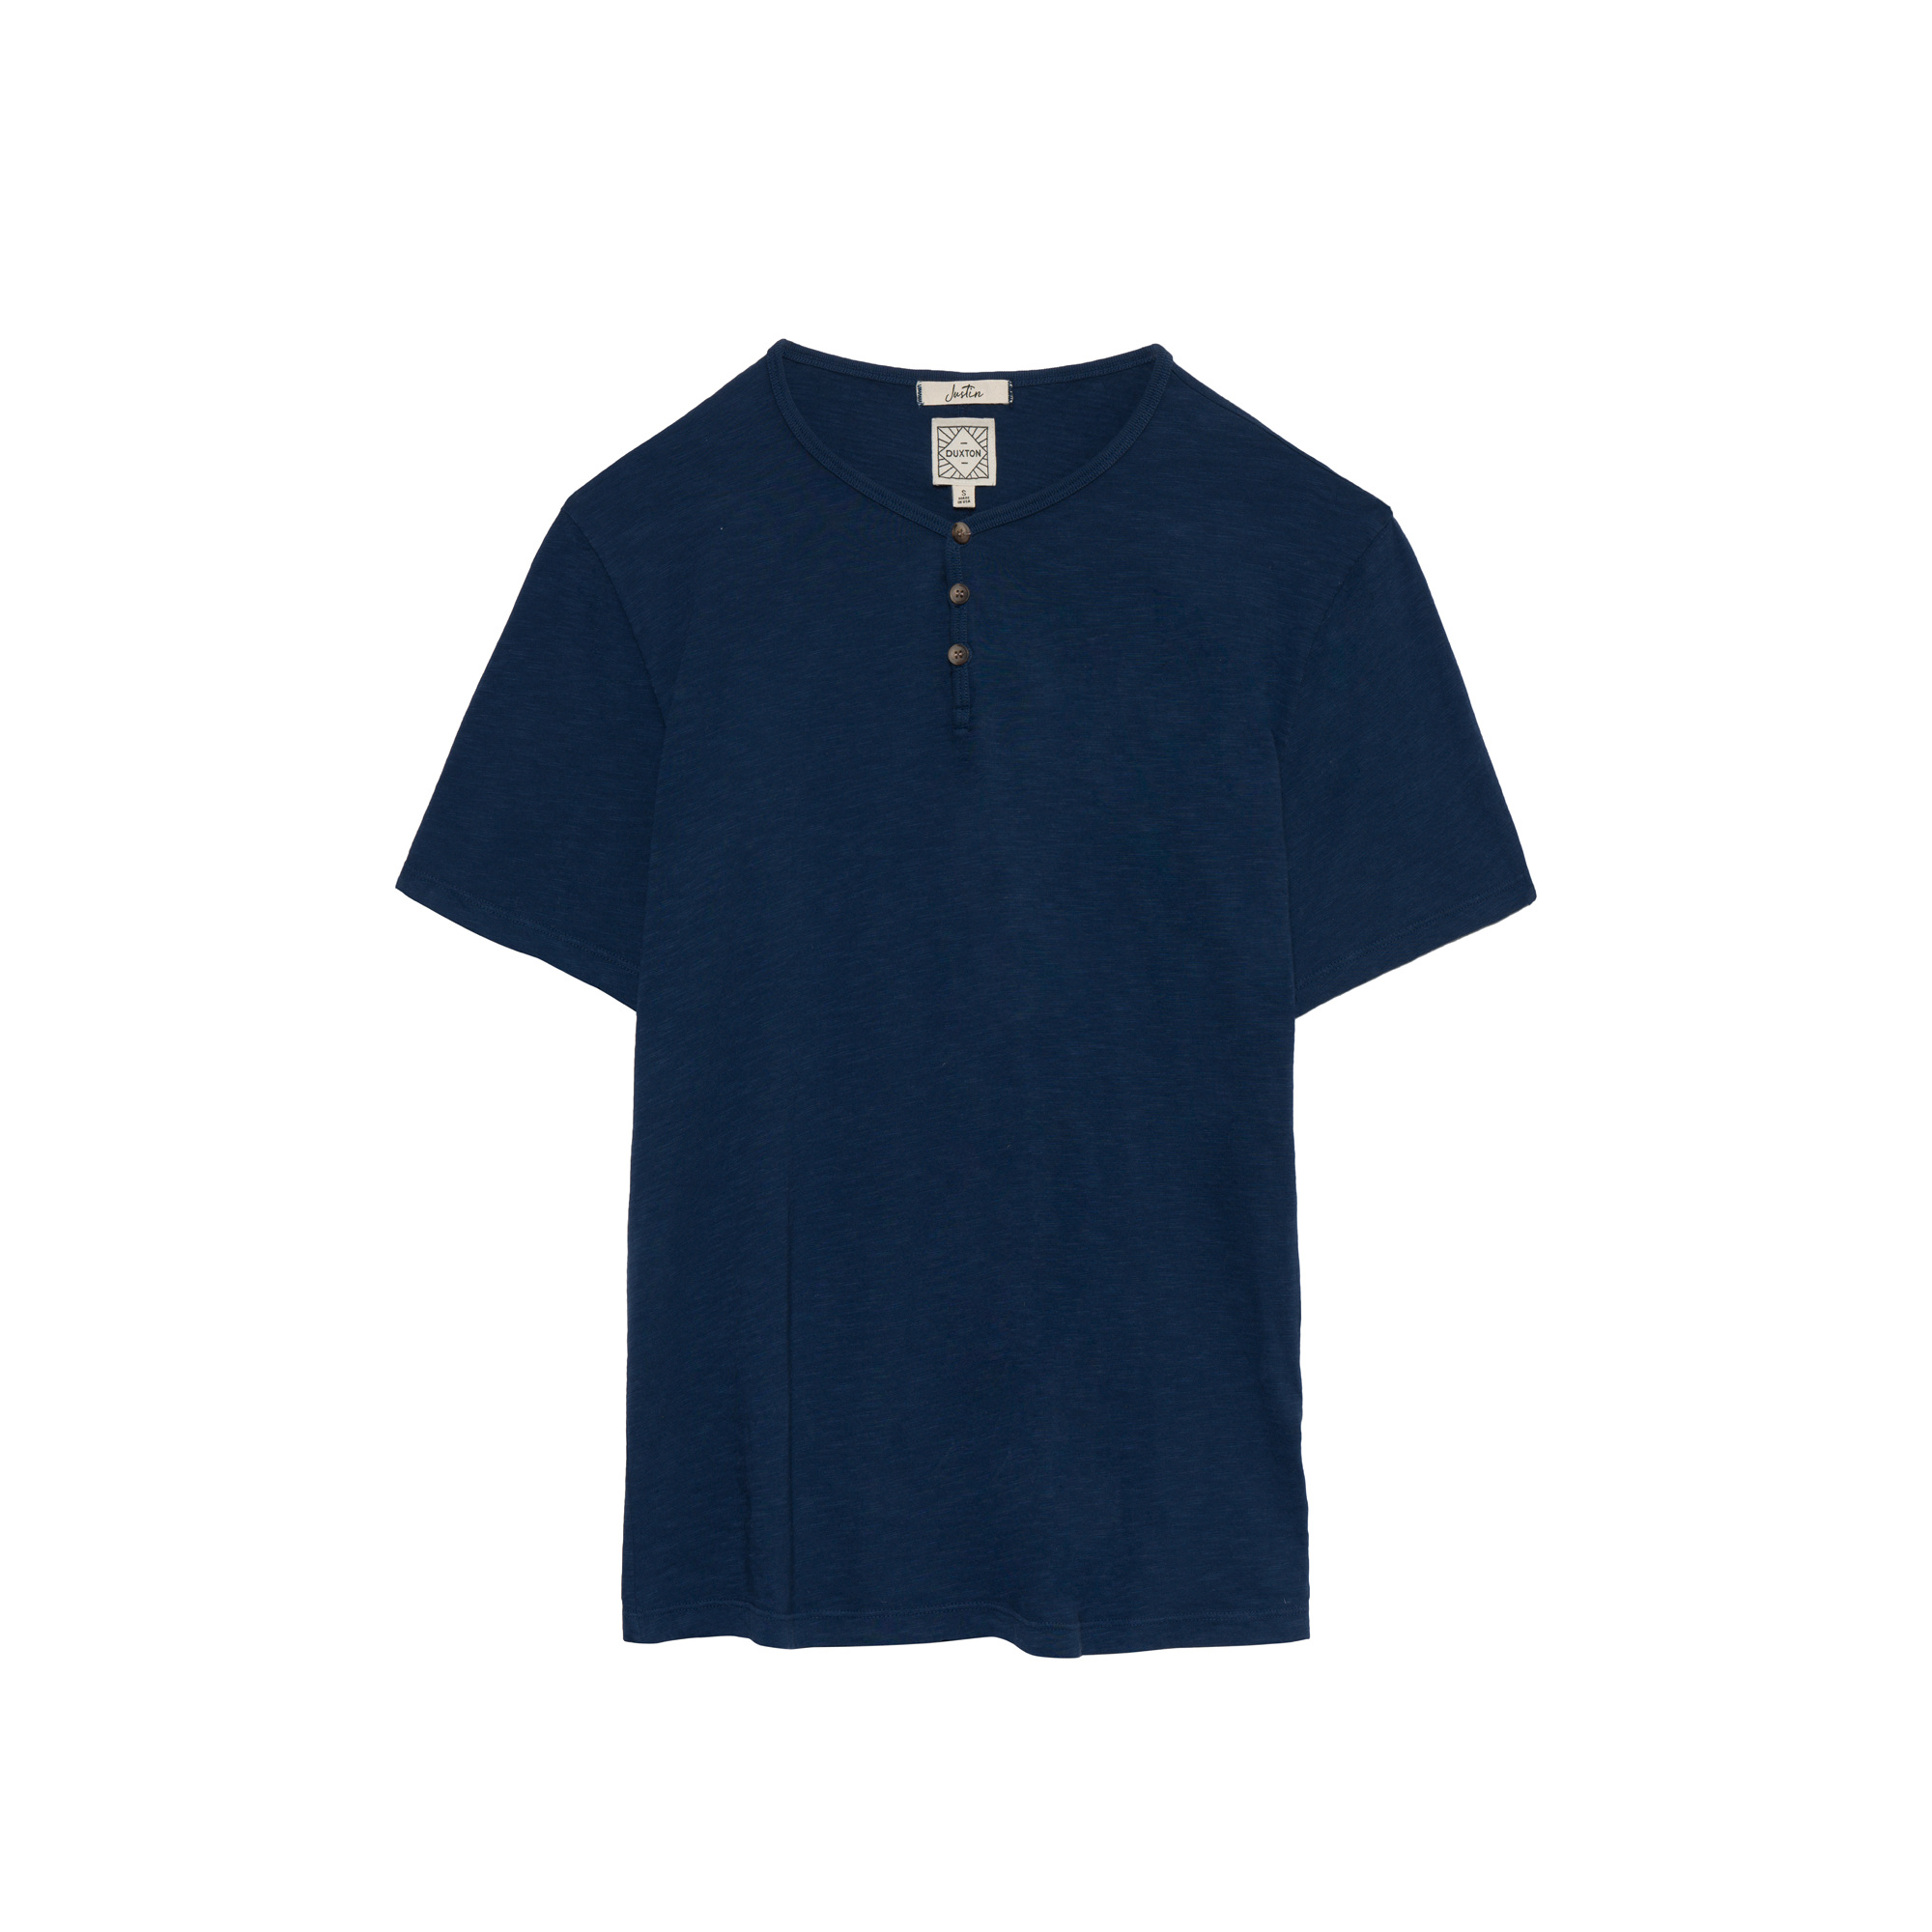 DUXTON Men's Henley Tee - Deep sea blue (flat)